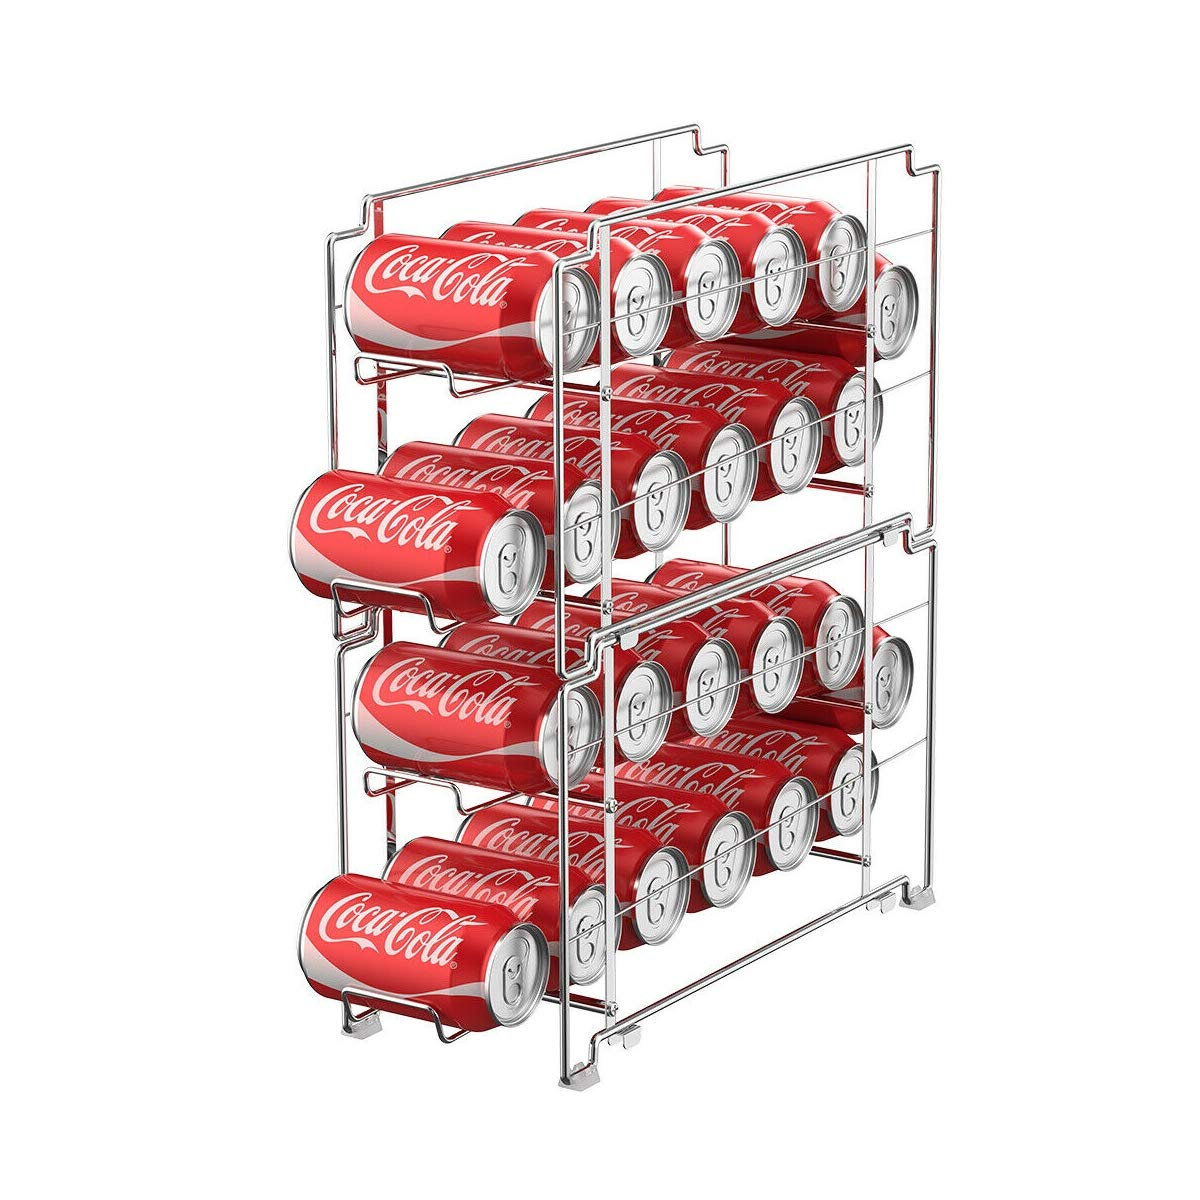 2-Pck Soda Can Rack Organizer Stackable Beverage Dispenser Rack Hold 24 Cans, Quick Delivery by $/Reliable